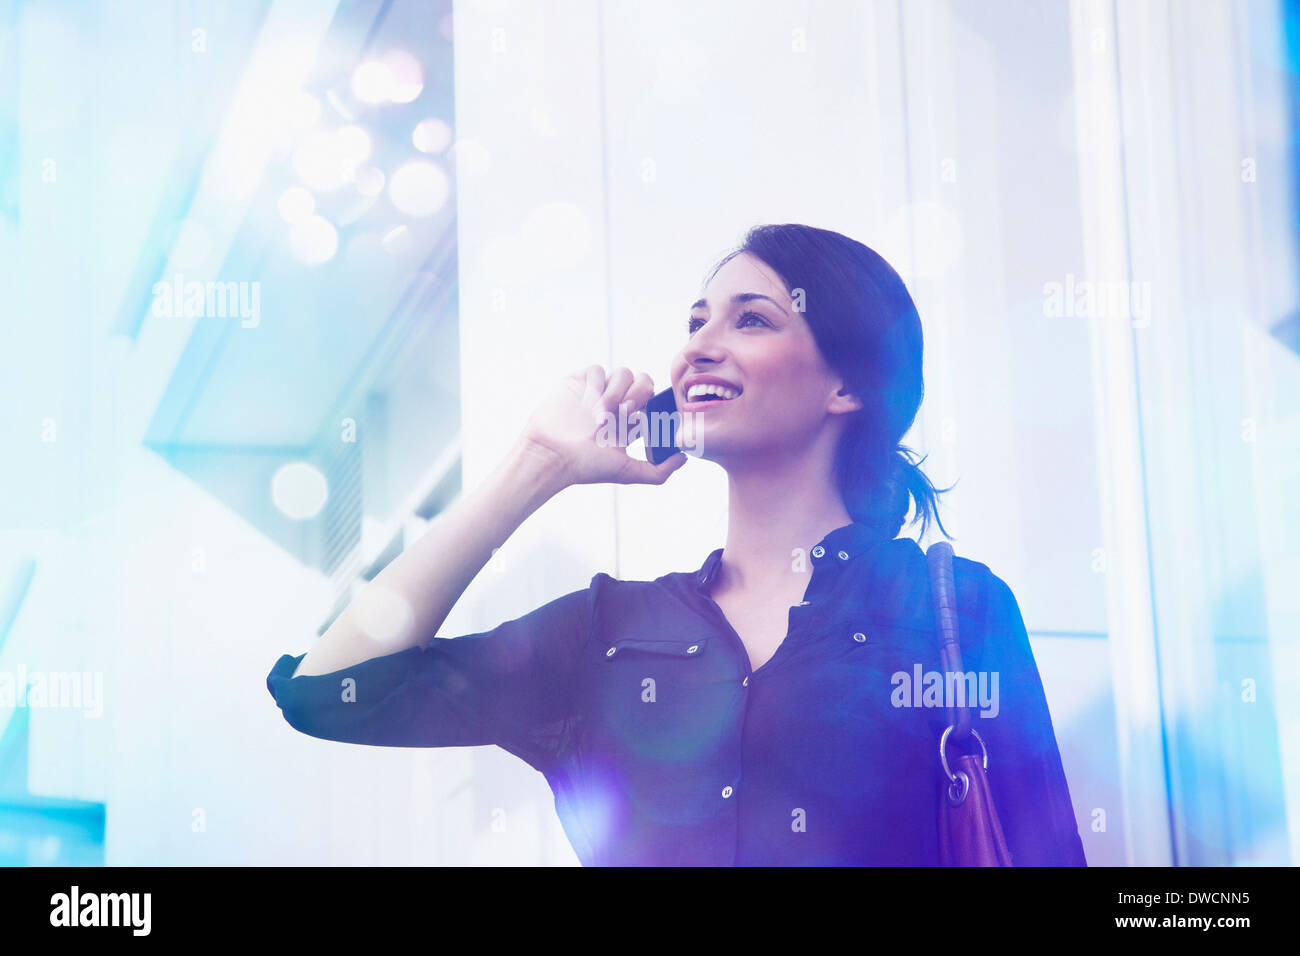 Young businesswoman talking on smartphone with lights coming out of it - Stock Image